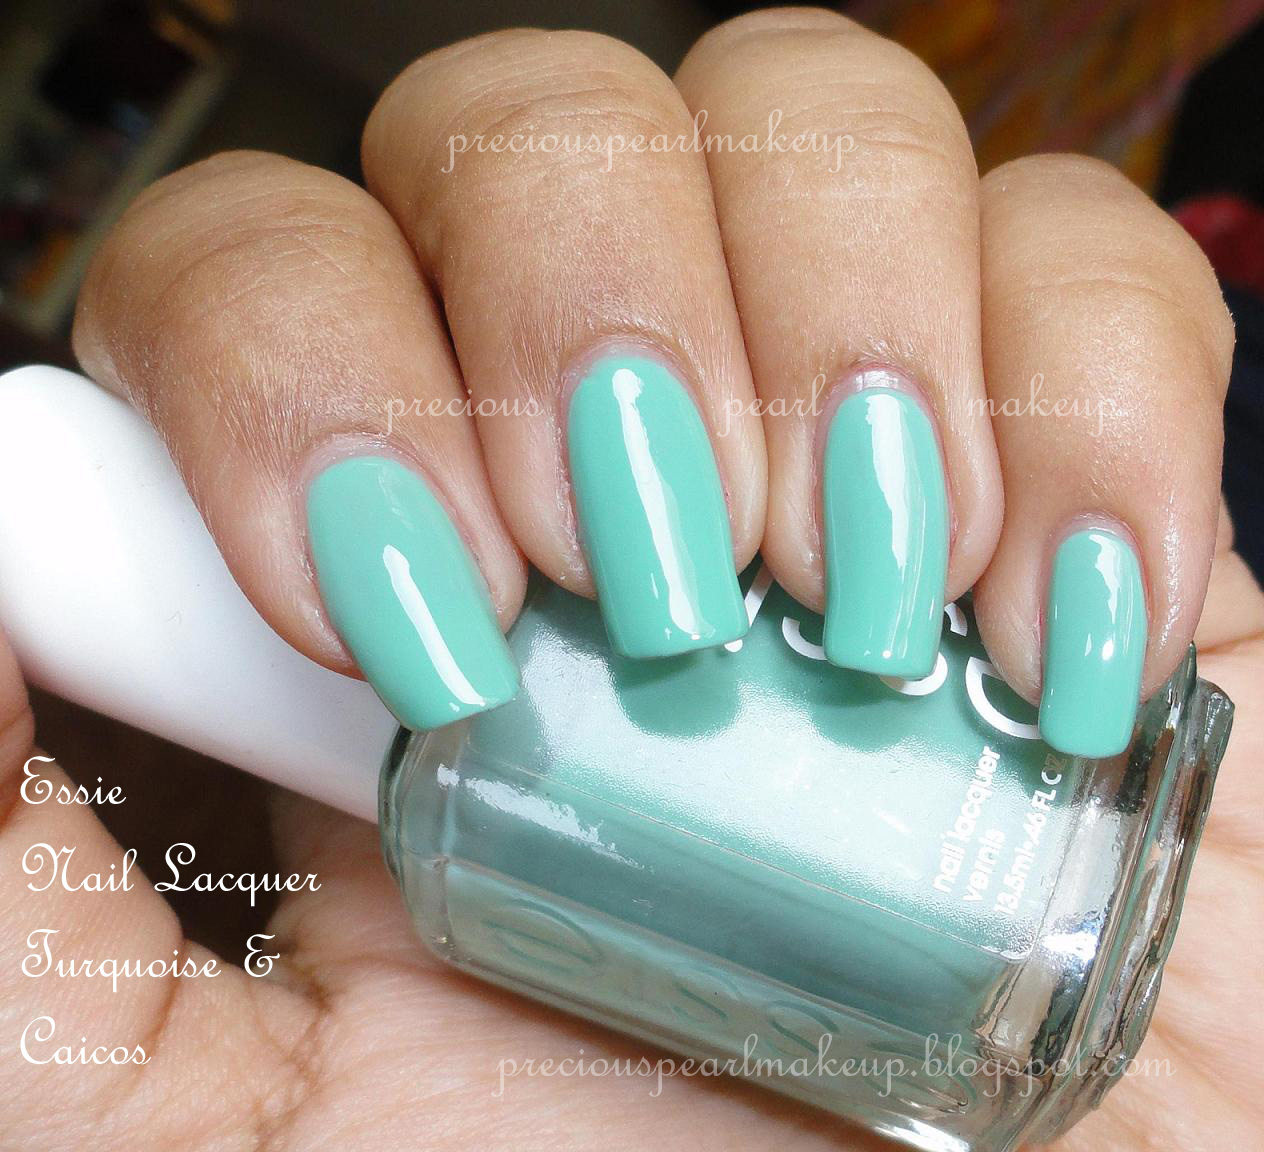 preciouspearlmakeup: Essie Nail Lacquer Turquoise and Caicos